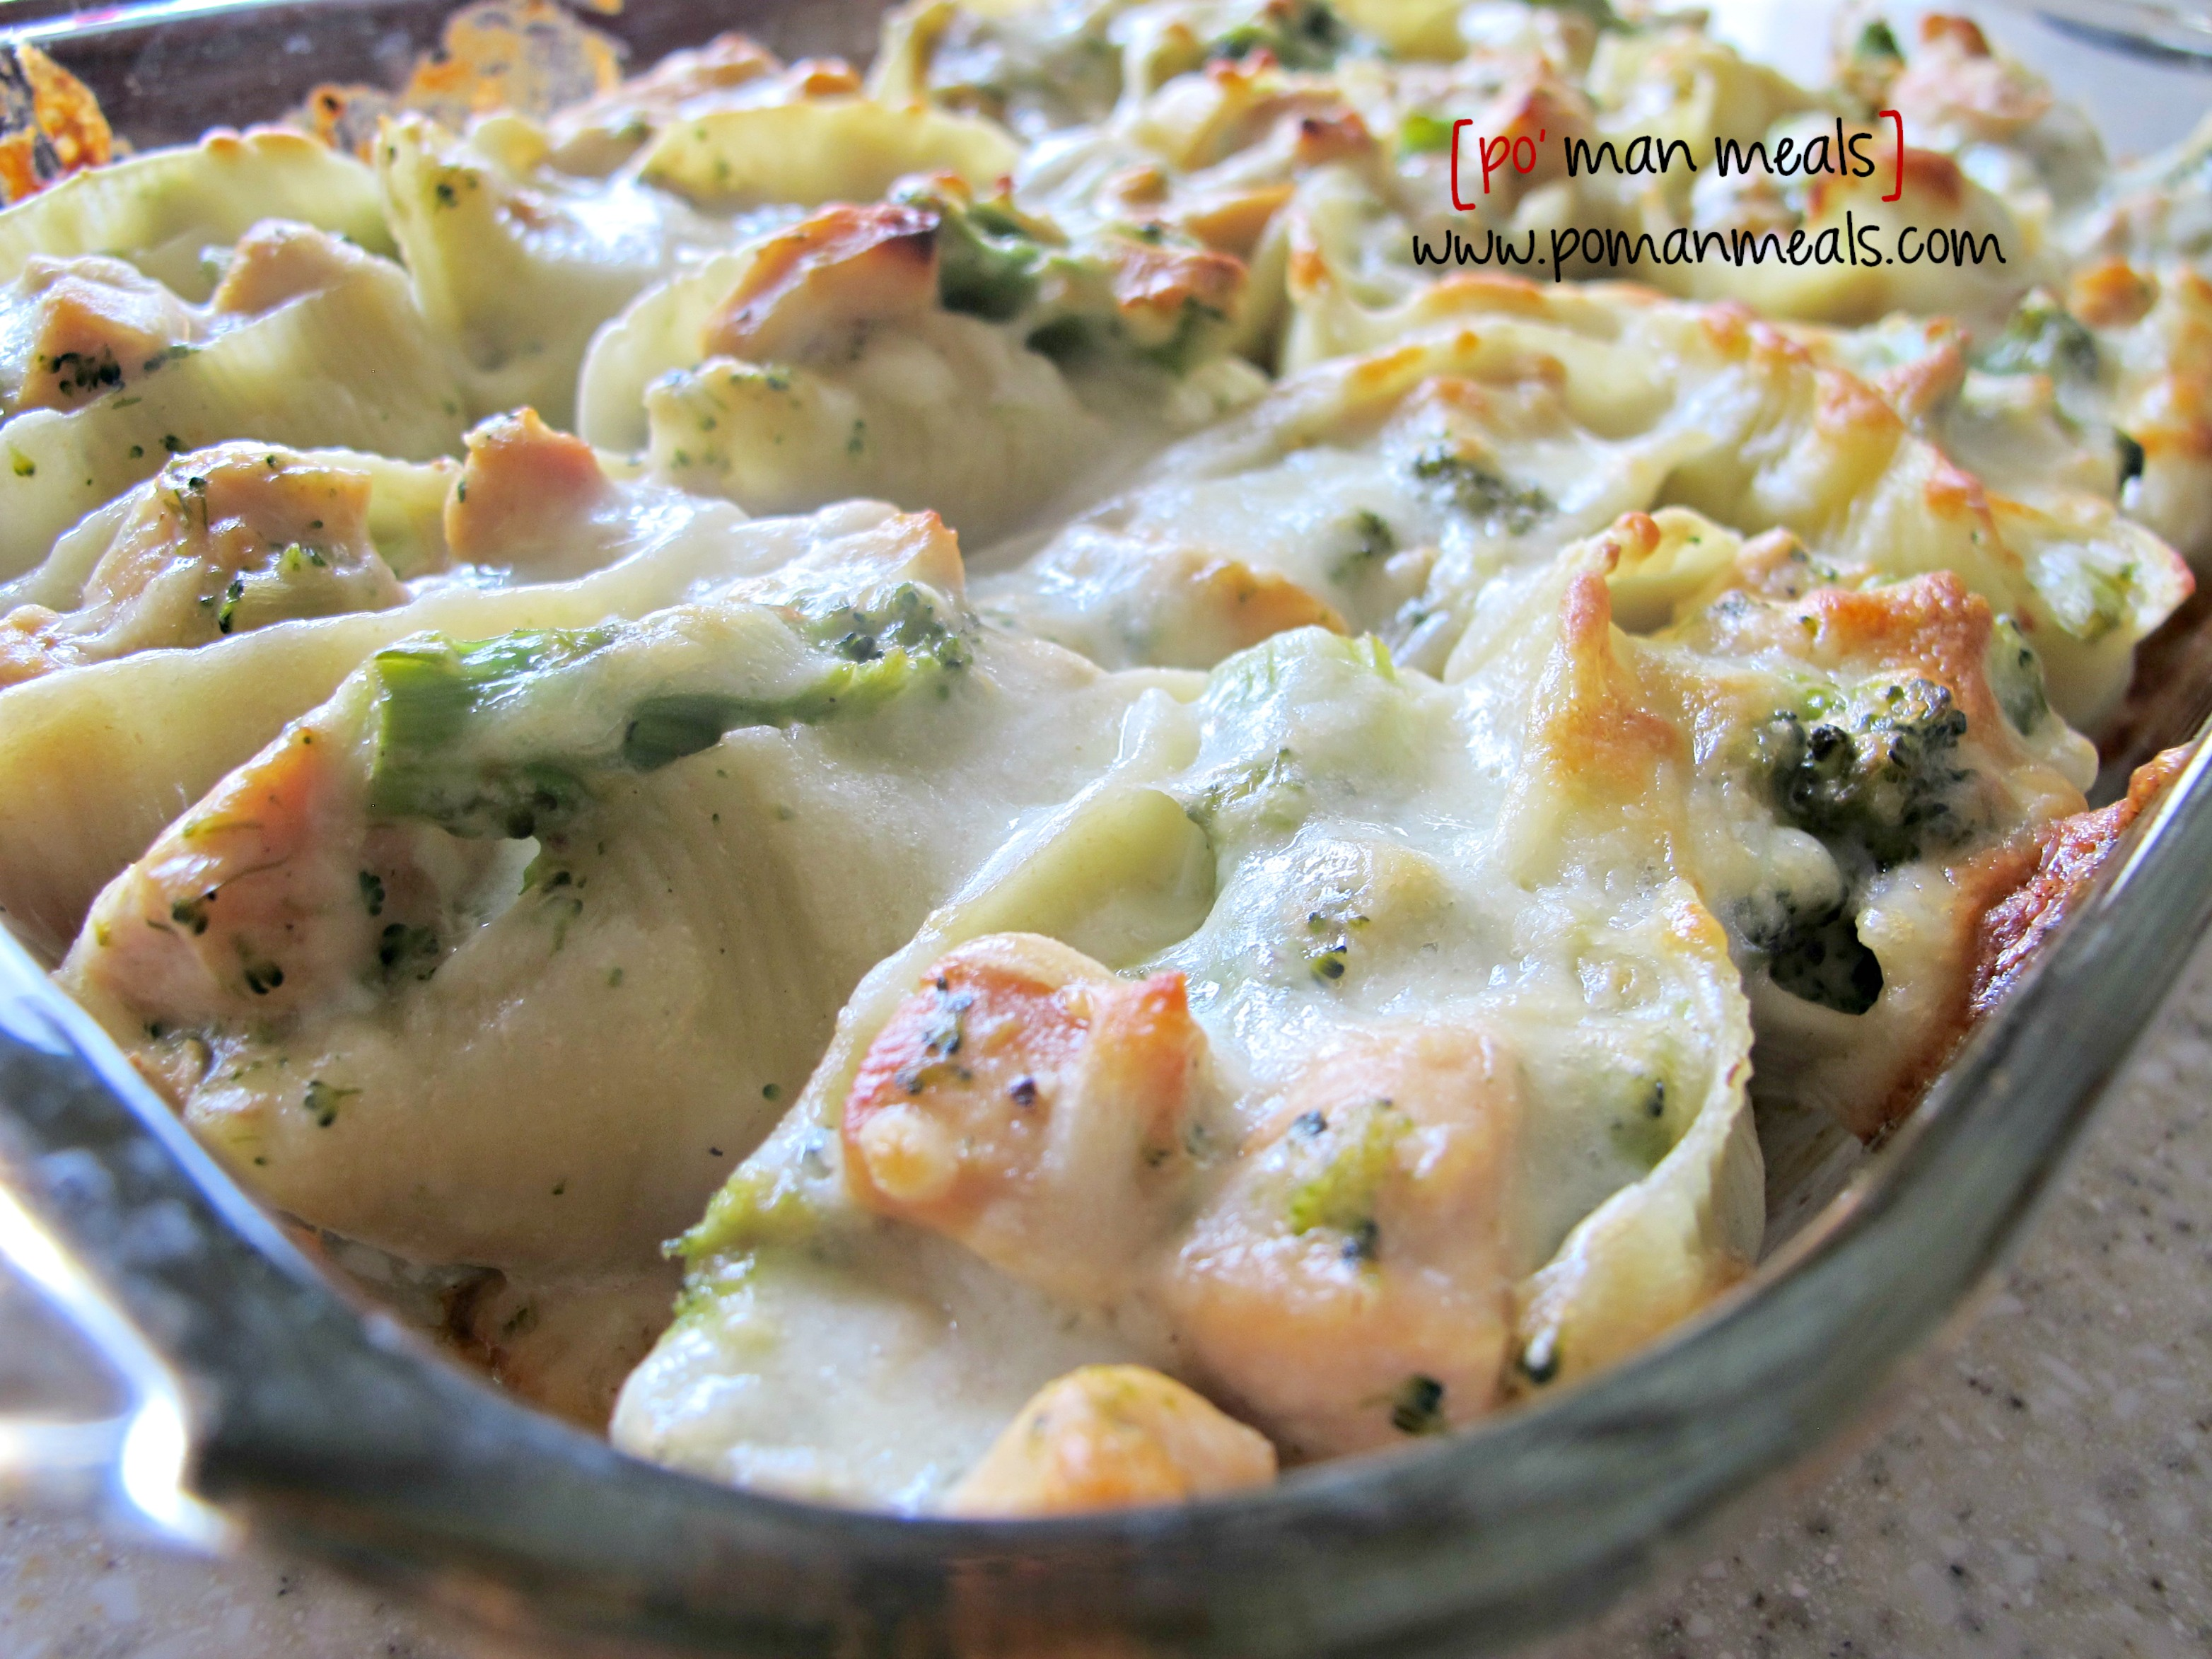 po' man meals - chicken and broccoli stuffed shells